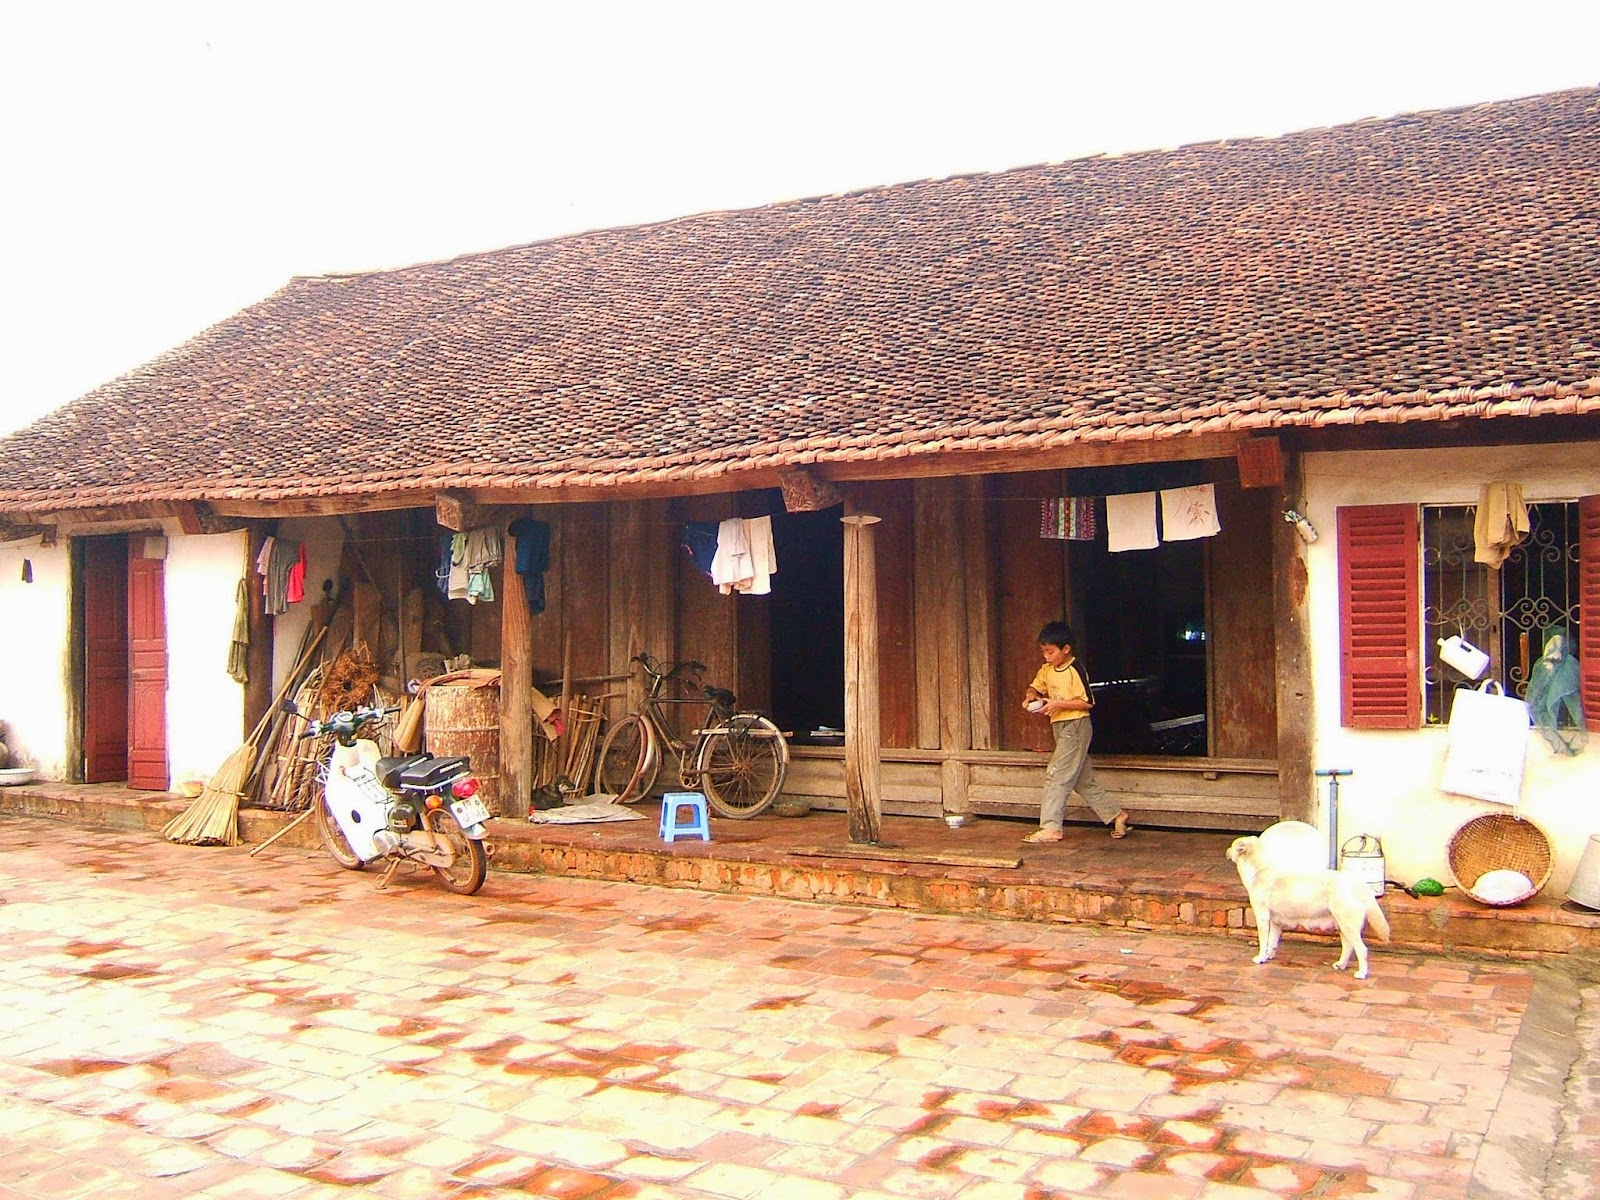 Viet House - Vietnamese villages daily life habits and costumes